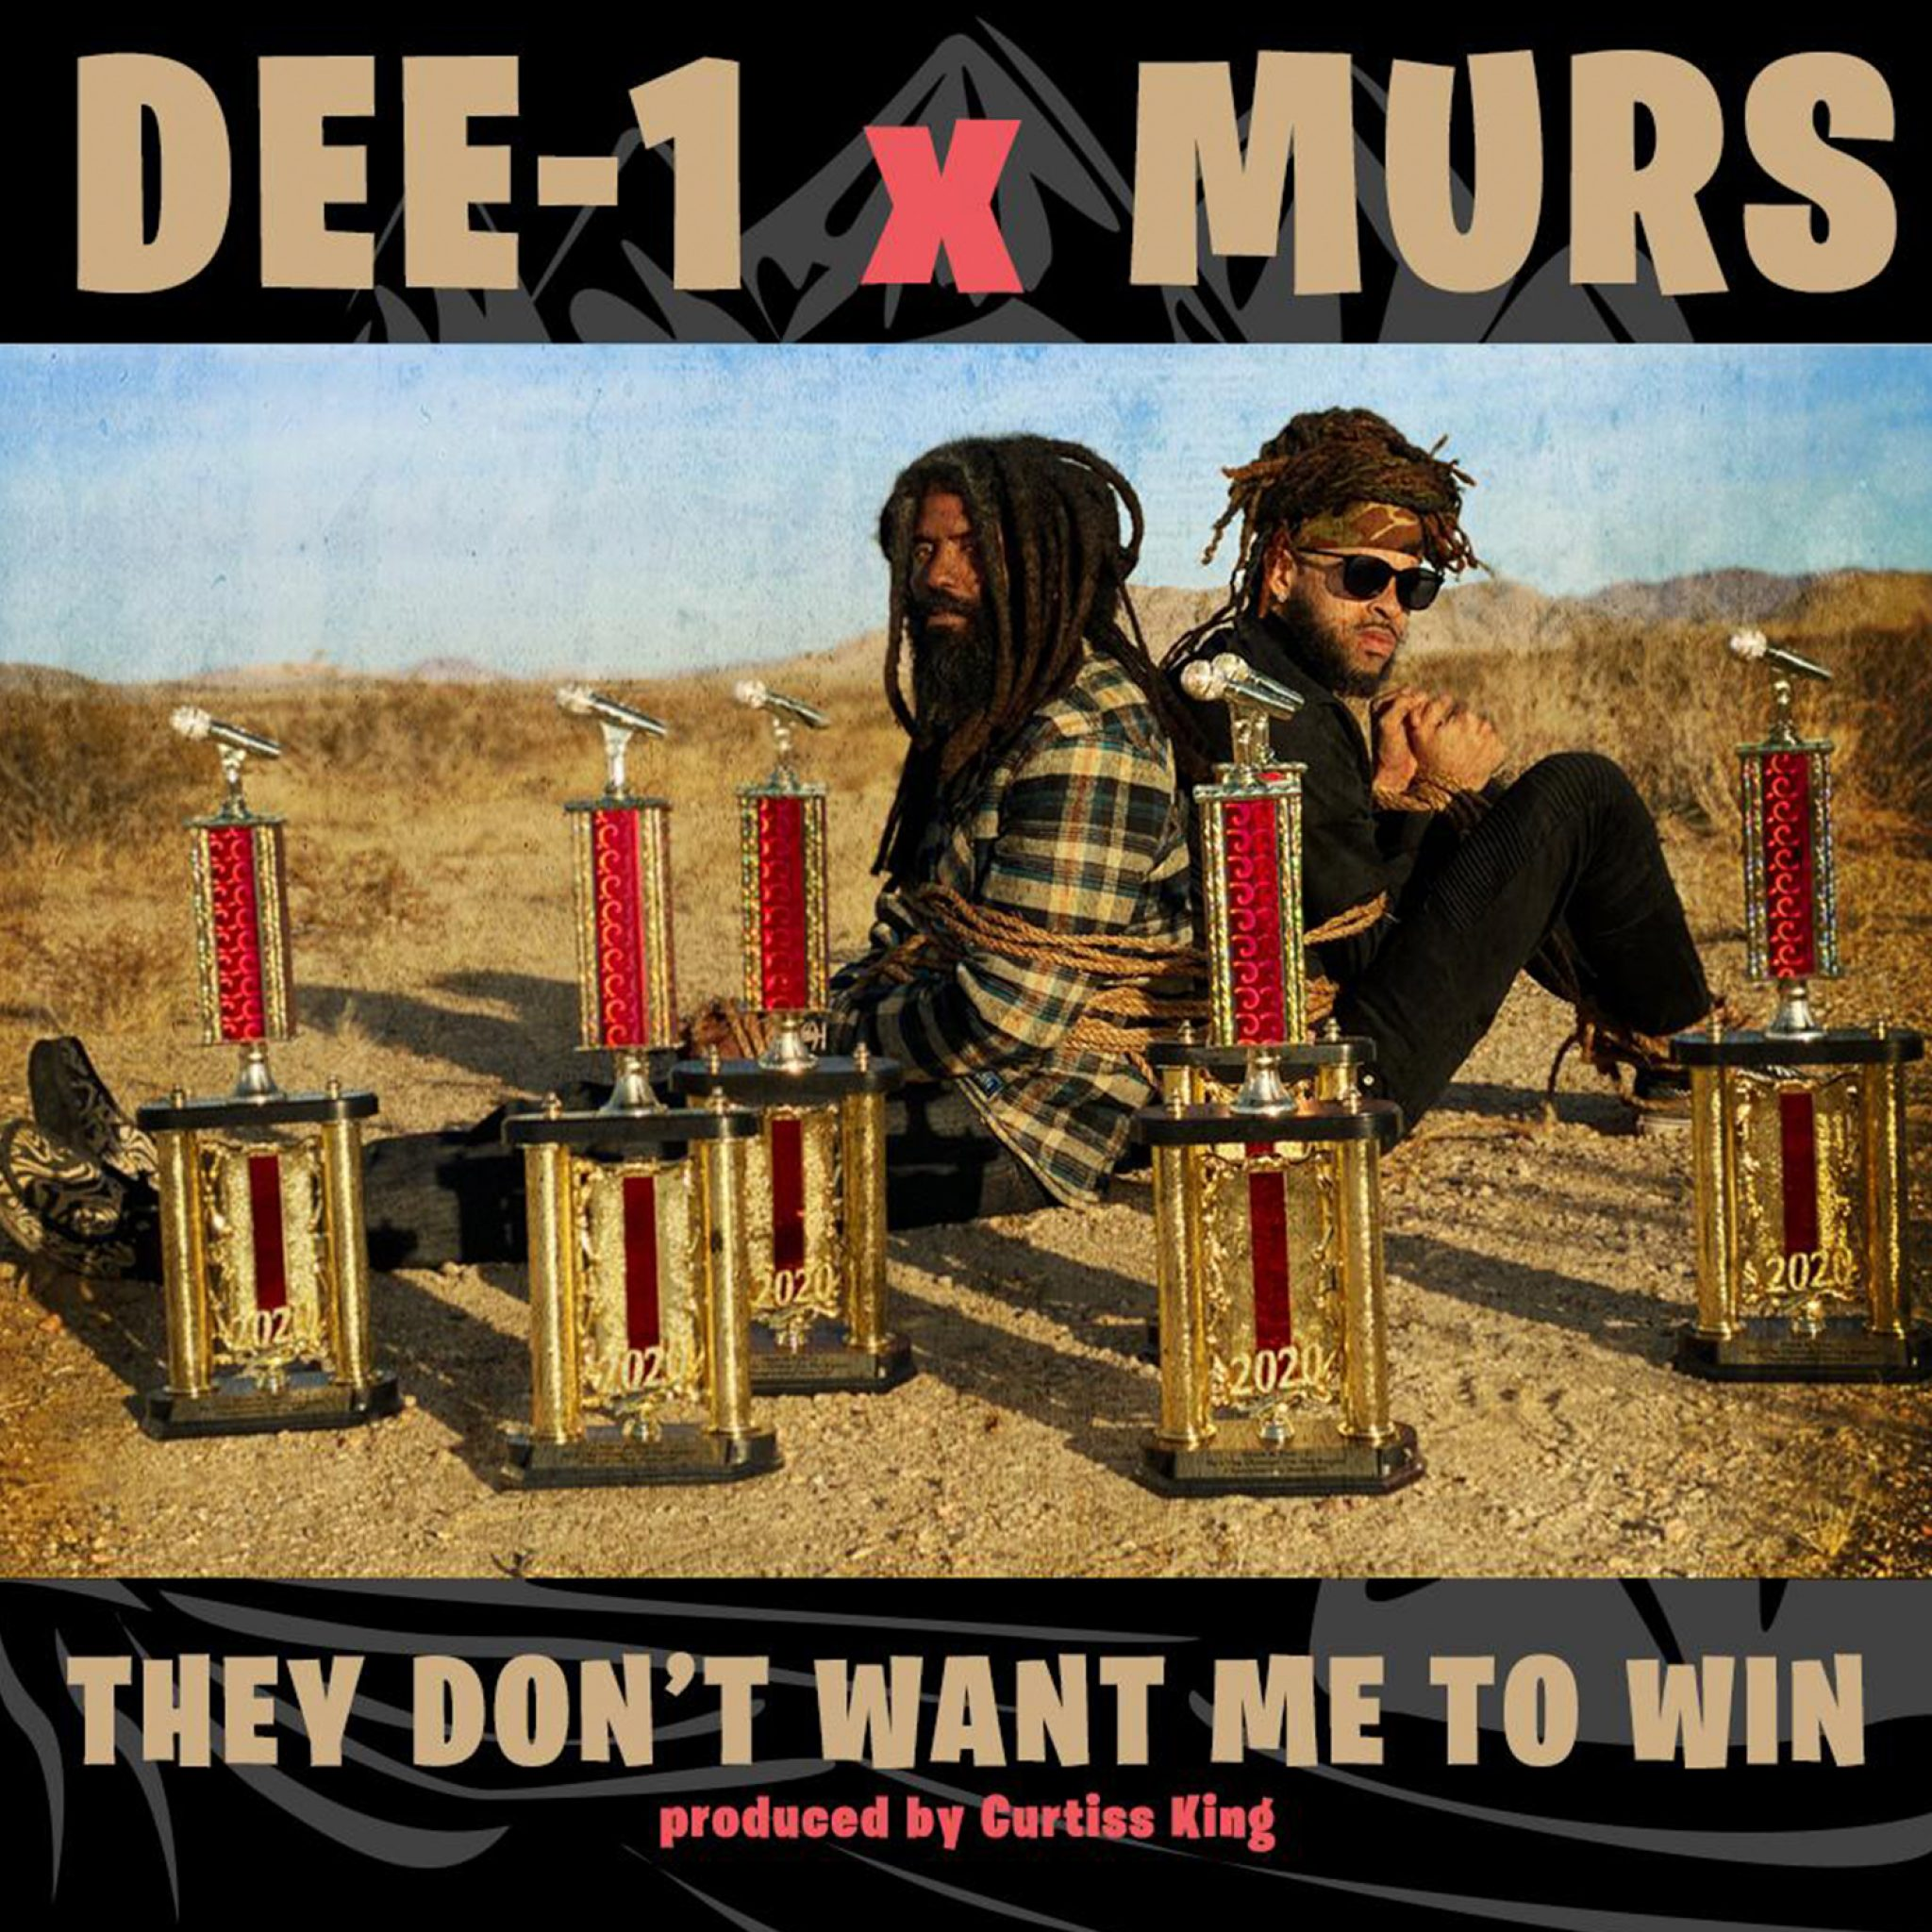 Watch Now: Murs & Dee-1 - They Don't Want Me to Win [prod. Curtiss King]